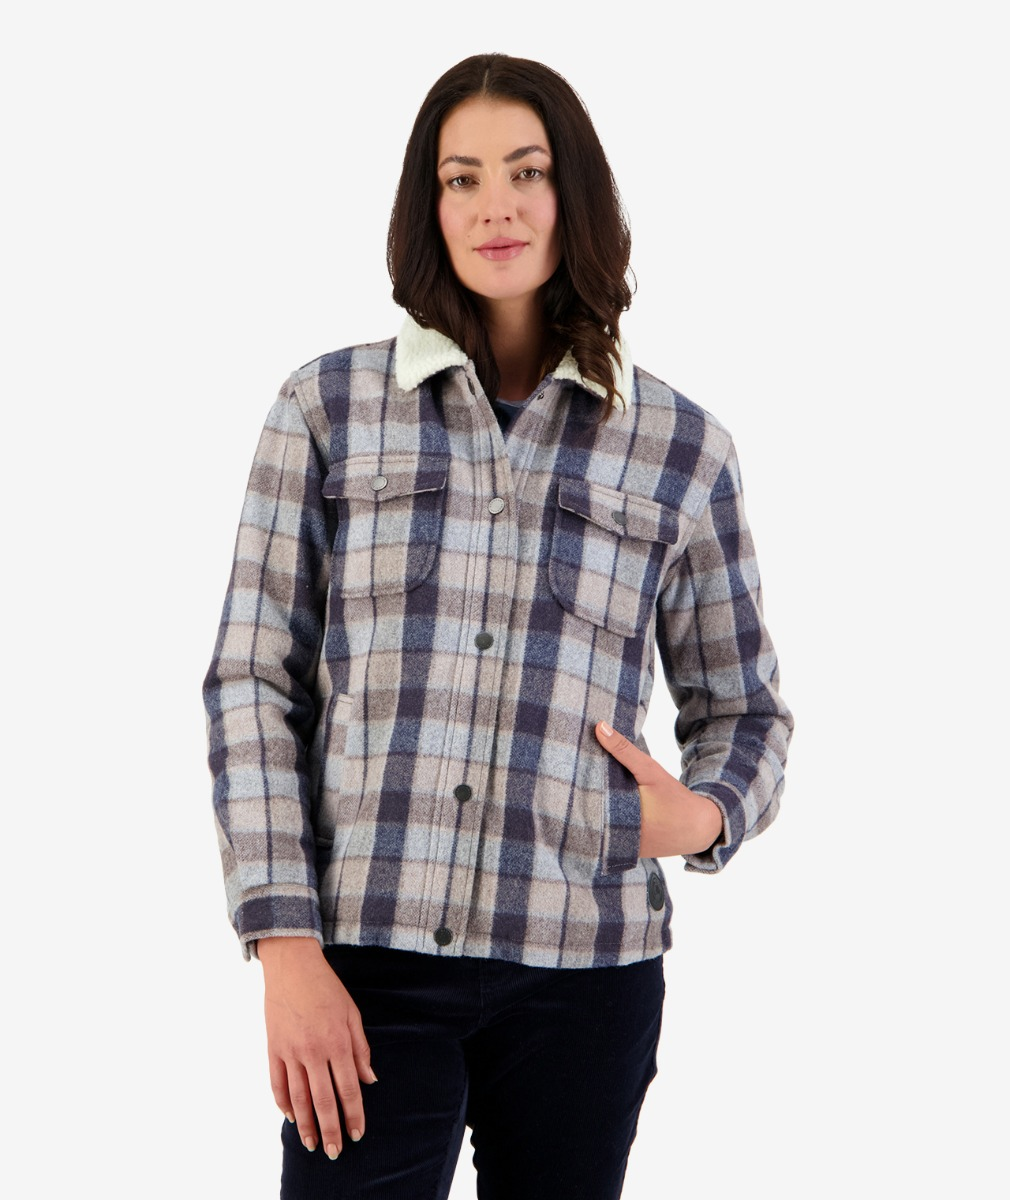 Kaituna Women's Sherpa Lined Jacket in Country Check